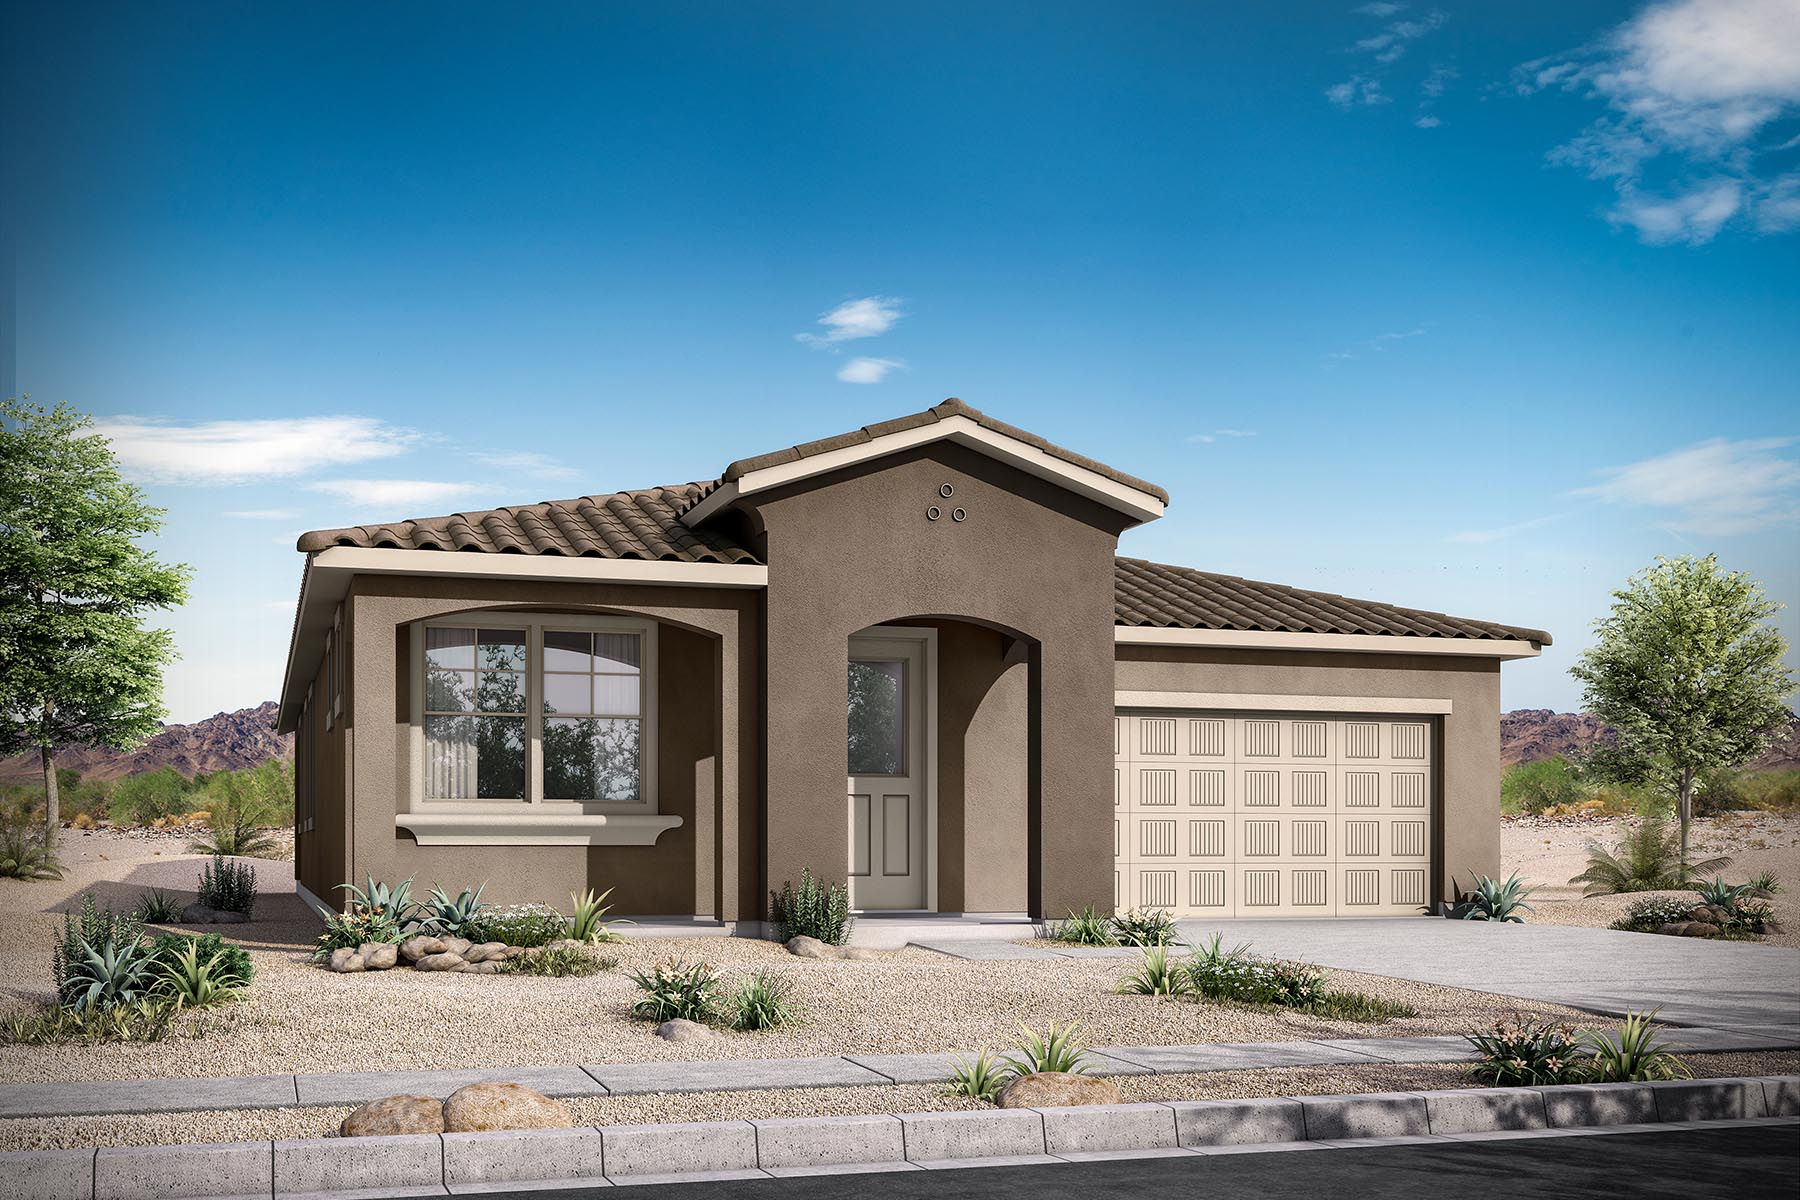 Everly Plan Elevation Front at Malone Estates in Queen Creek Arizona by Mattamy Homes